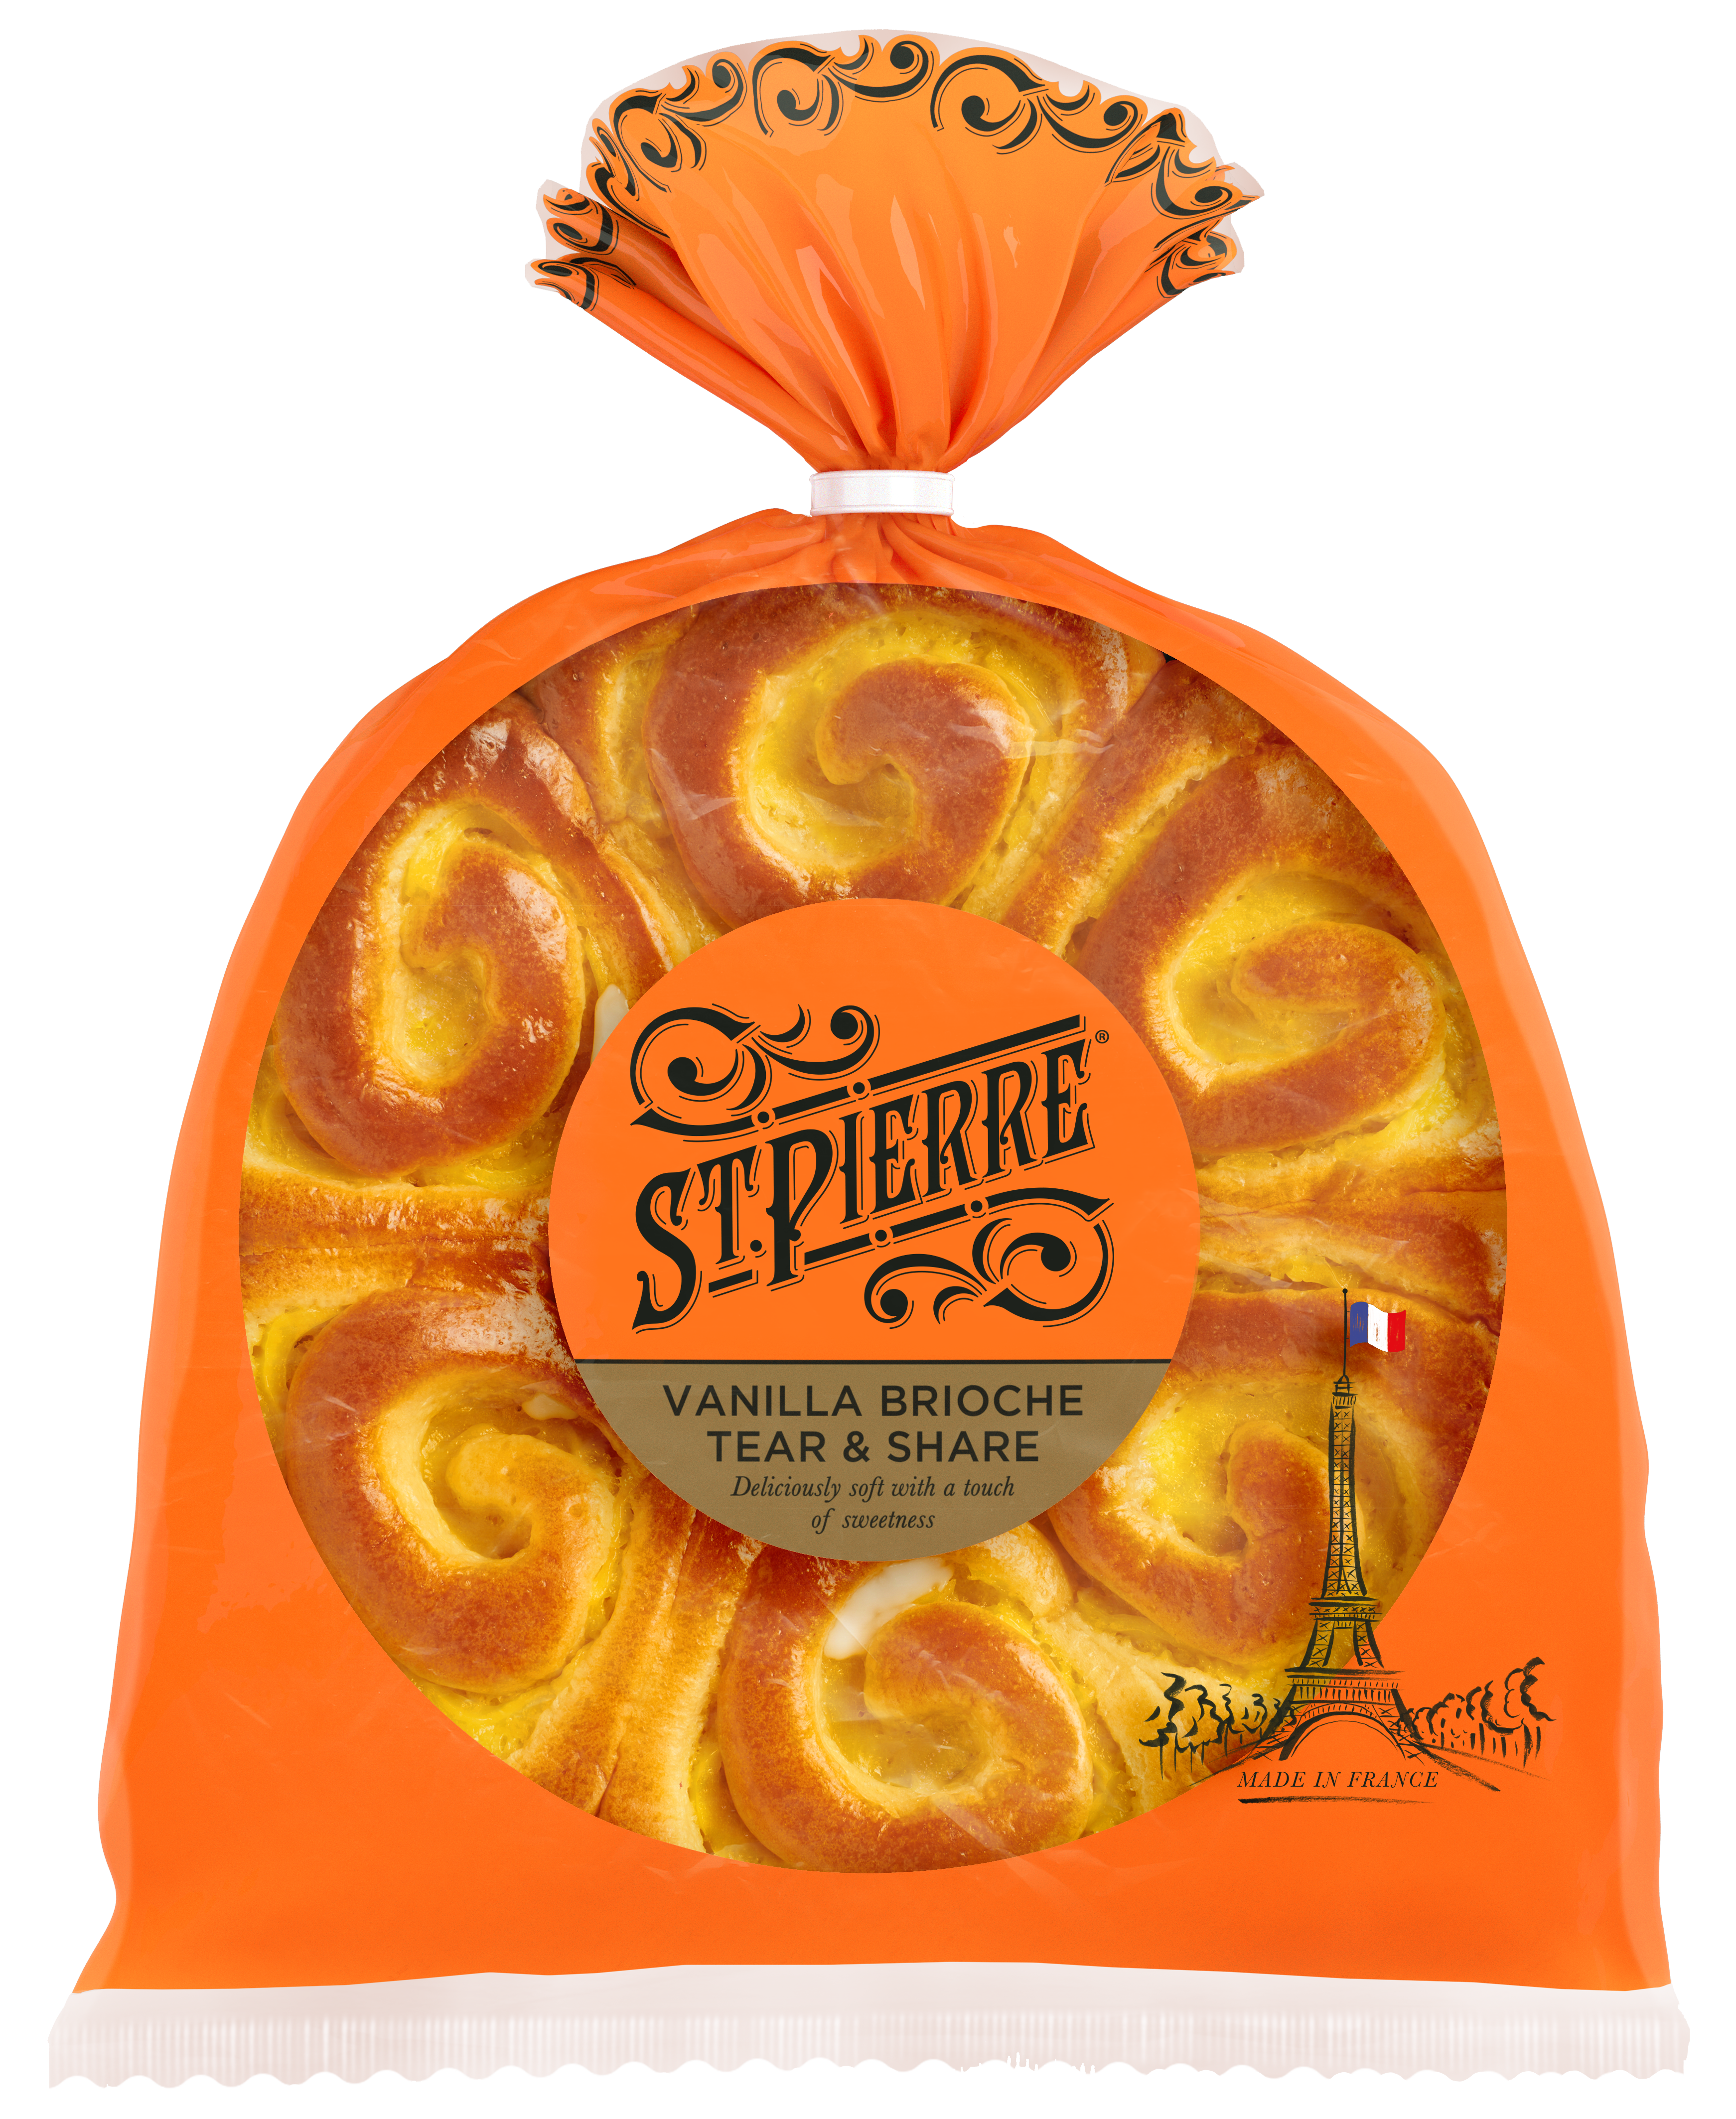 Pack of St Pierre Vanilla Brioche Tear and Share